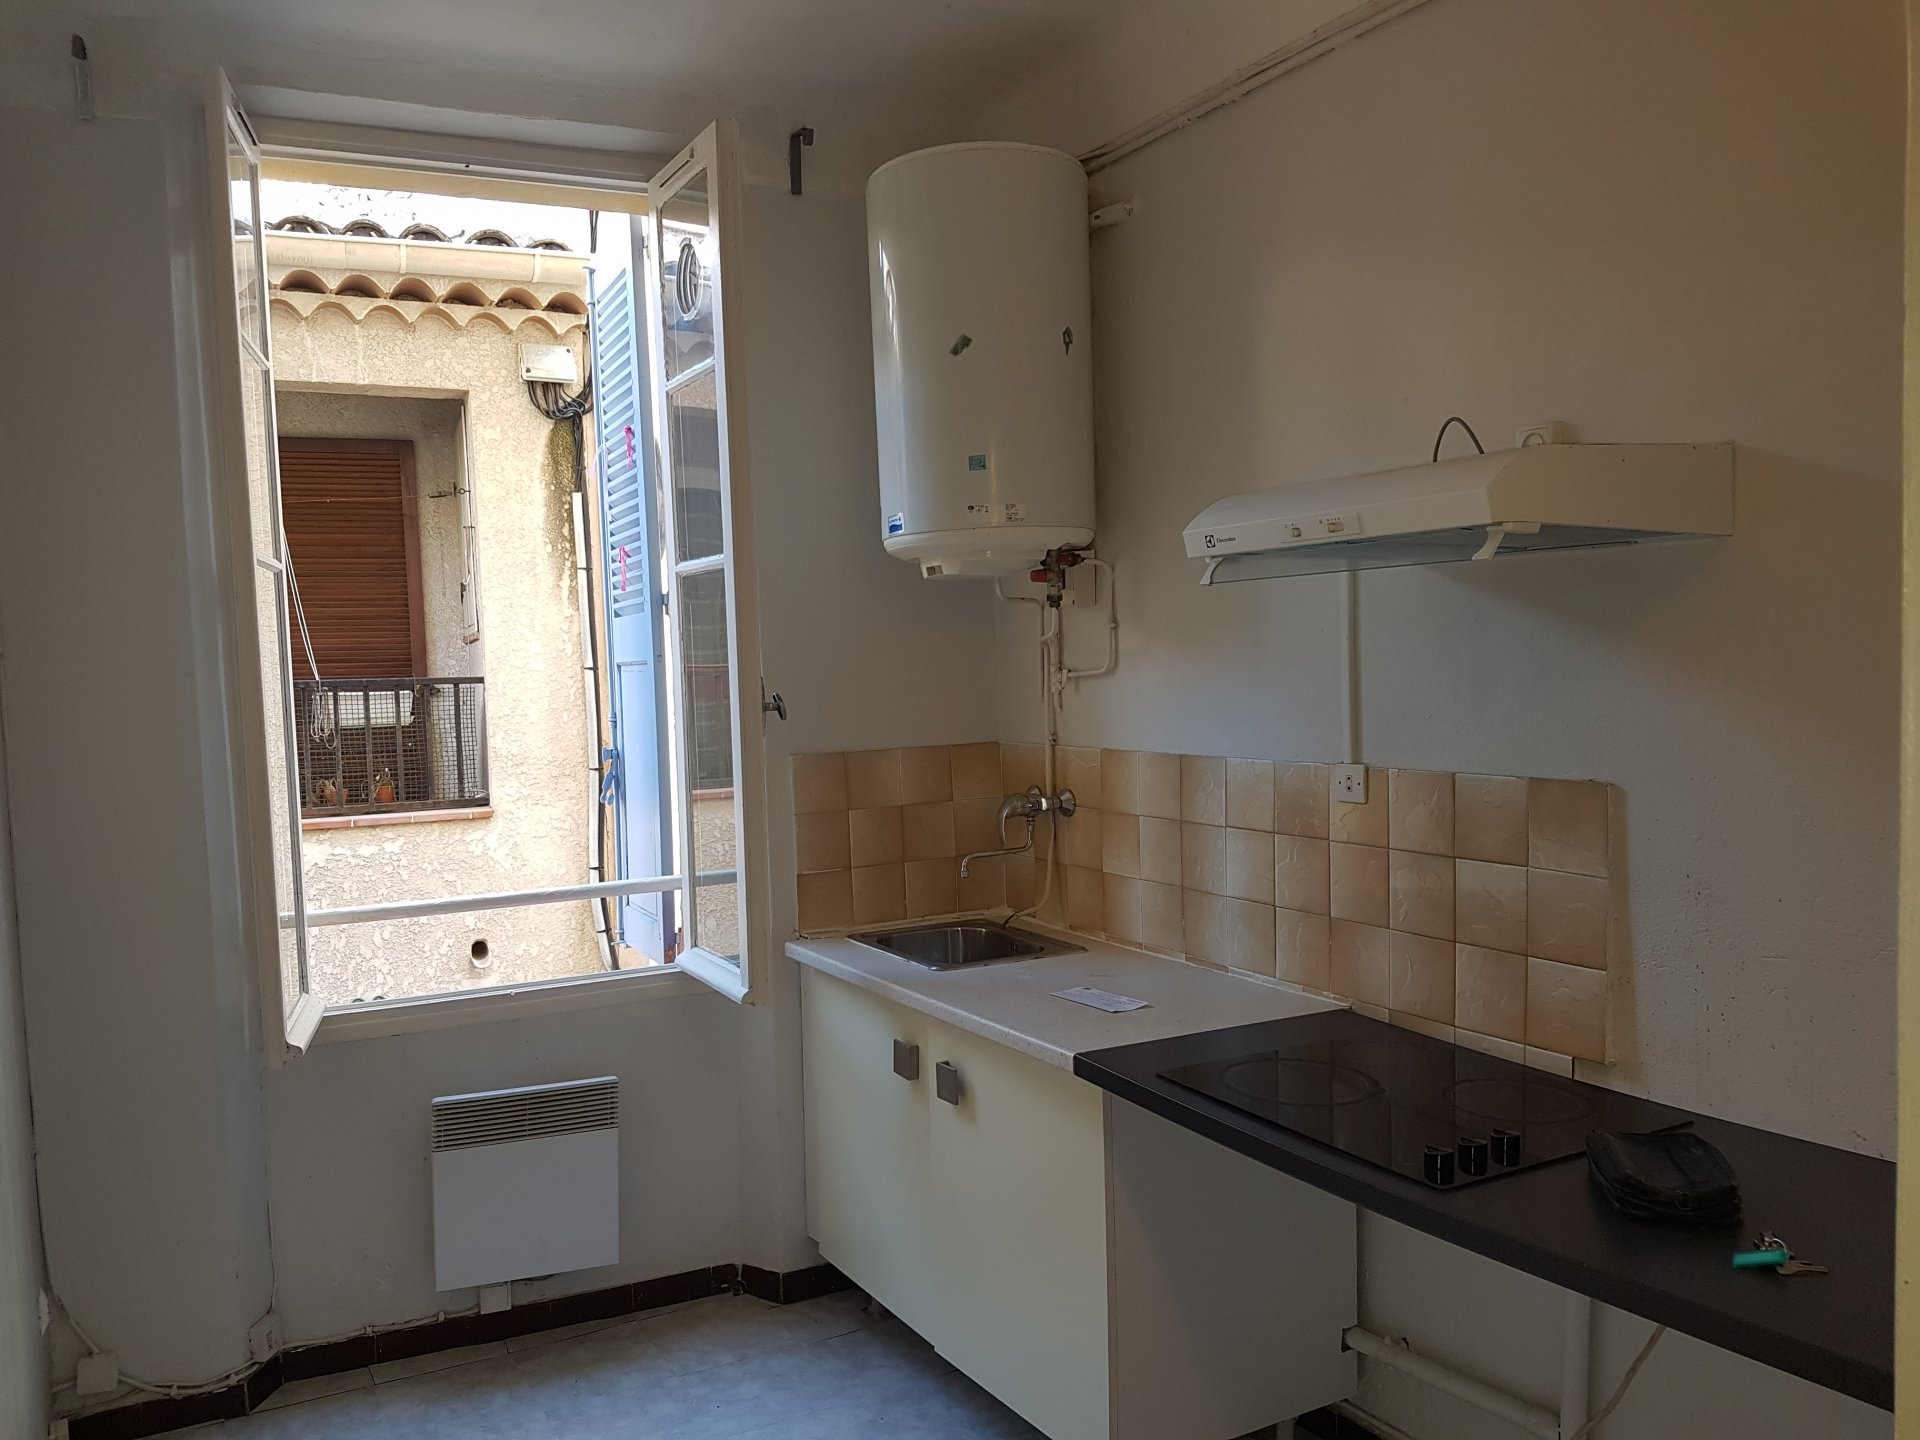 Old Antibes, rented long terms and empty